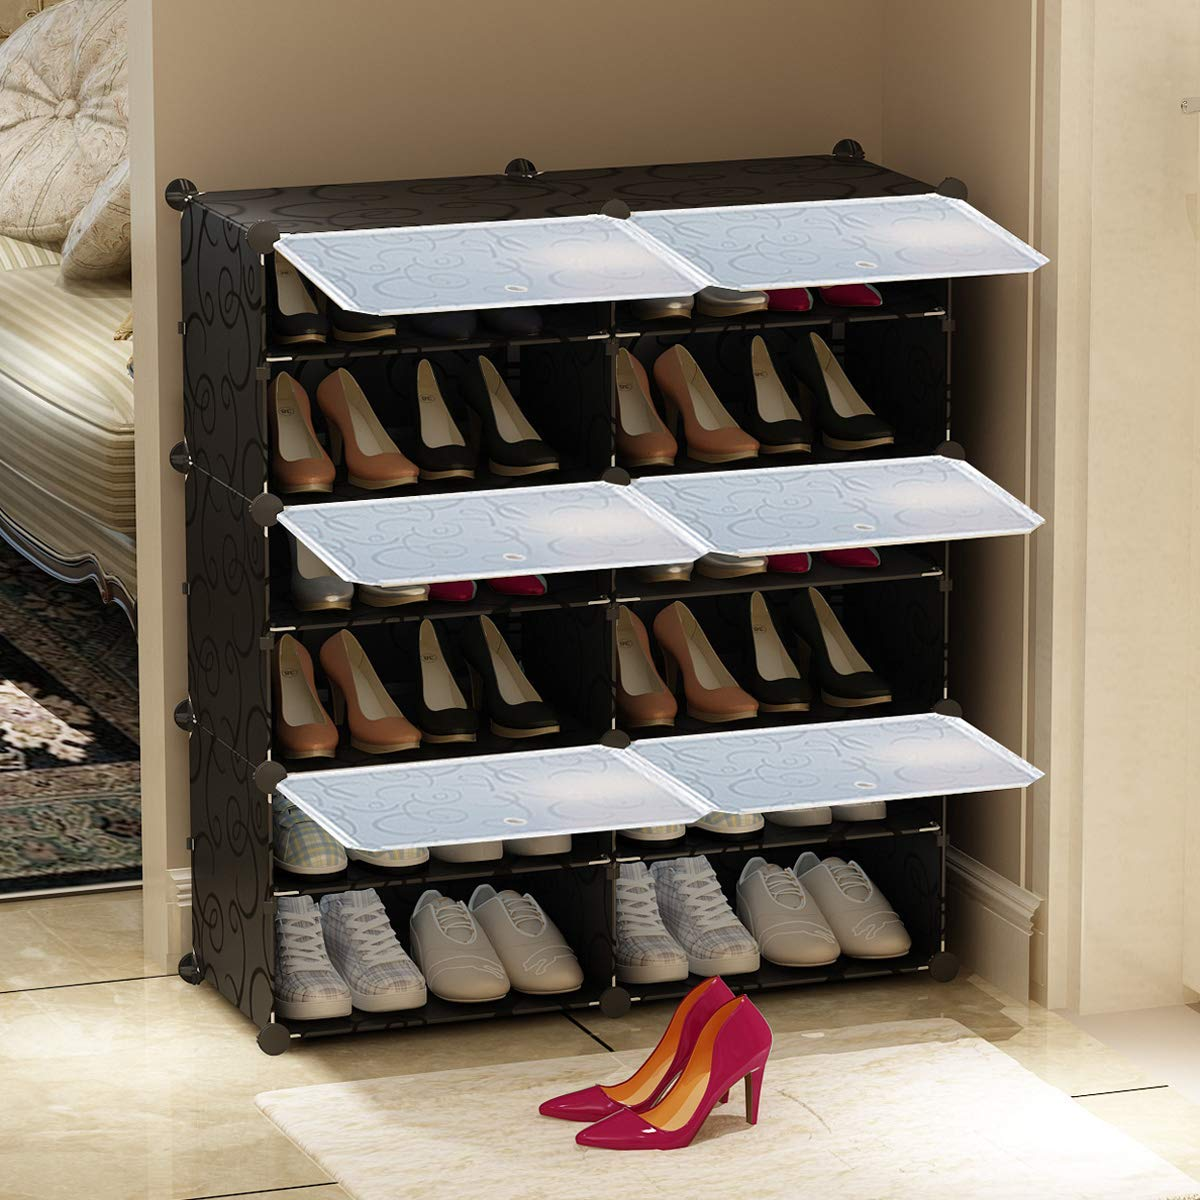 Boots KOUSI Portable Shoe Rack Organizer 20 Pair Tower Shelf Storage Cabinet Stand Expandable for Heels Slippers Black 10 Grids